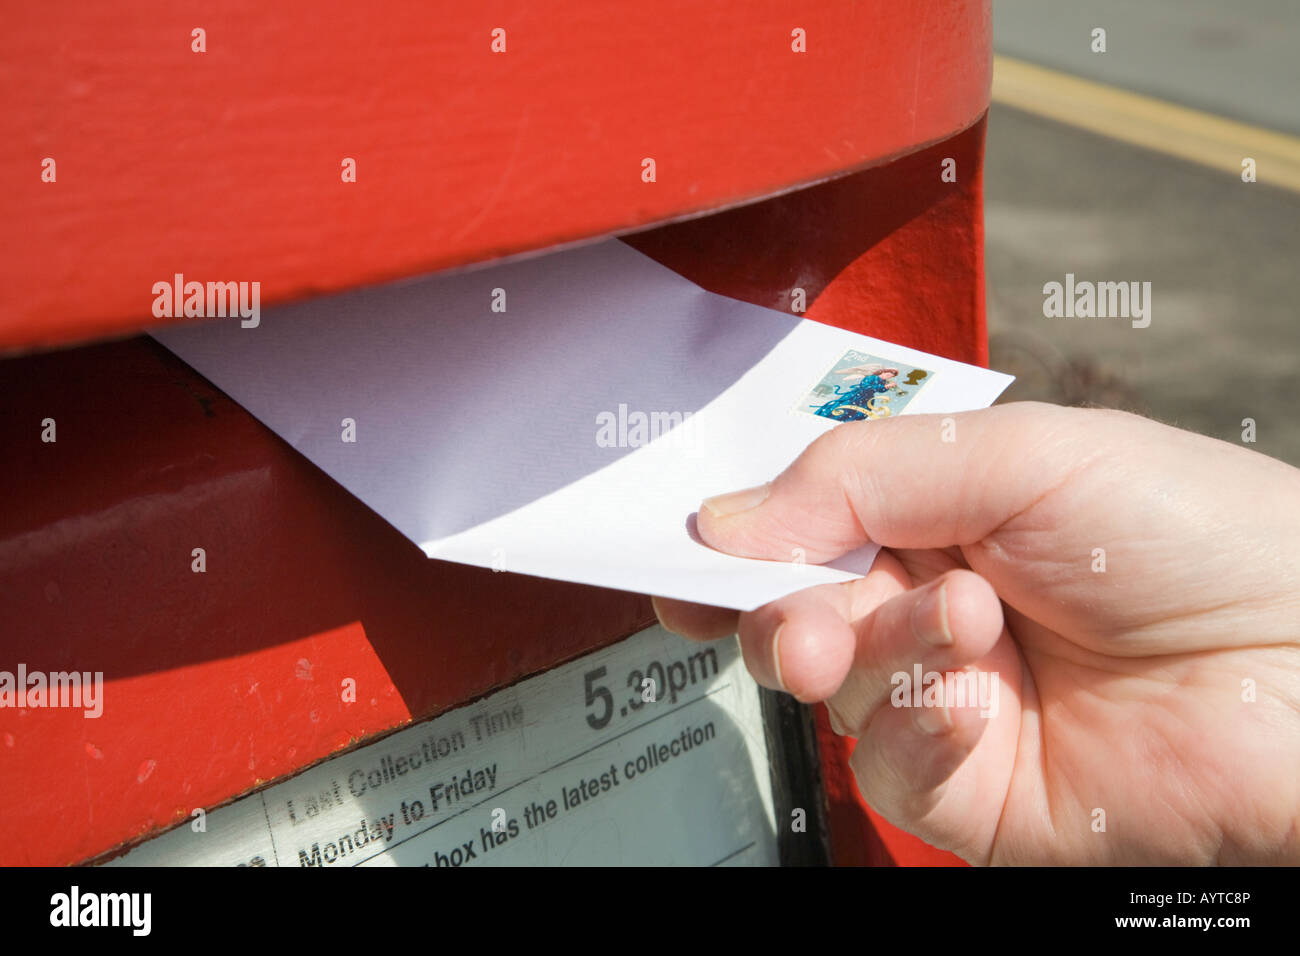 England UK Close-up of person's hand holding a letter with 2nd class stamp to post in a red postbox - Stock Image